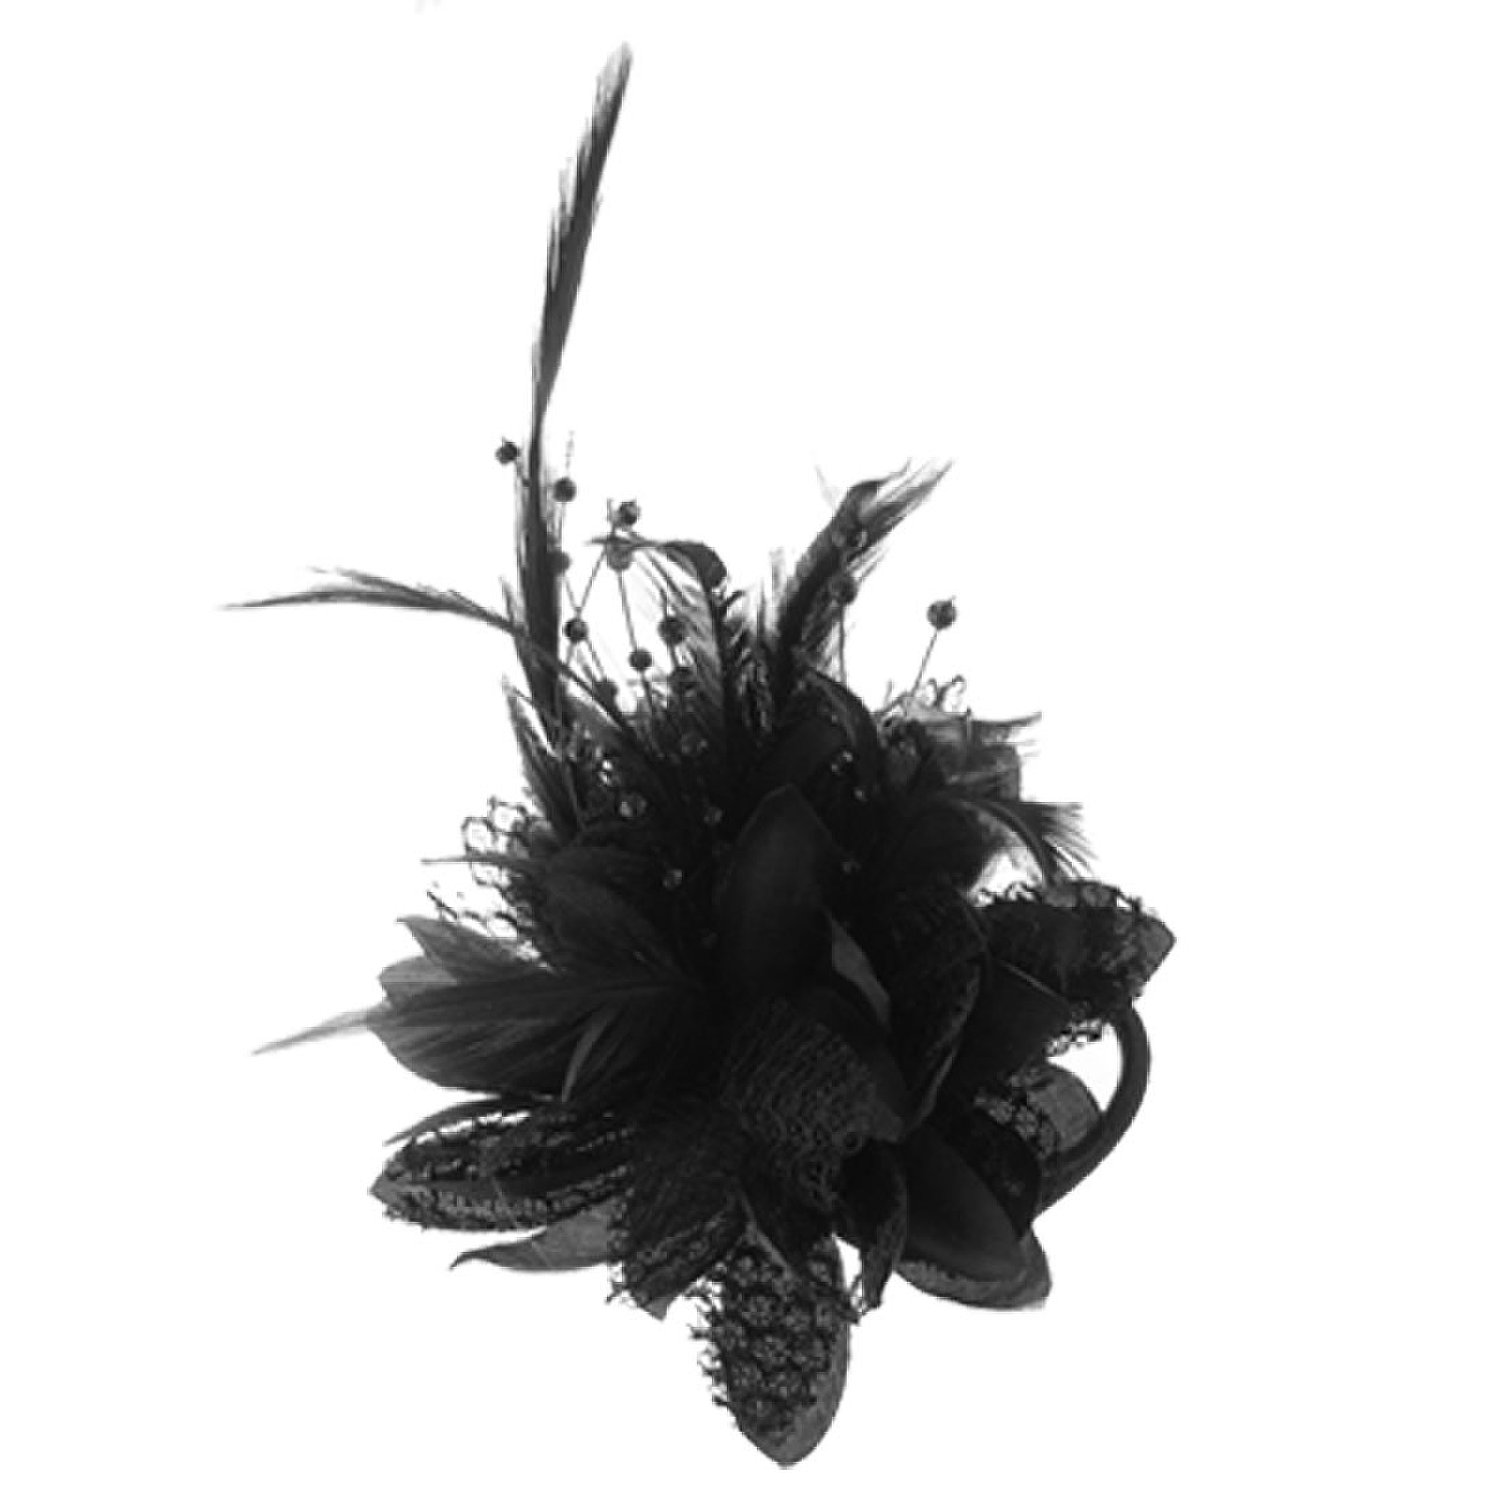 Flower Design Feather Decor Hair Band Tie Safety Pin Brooch Black